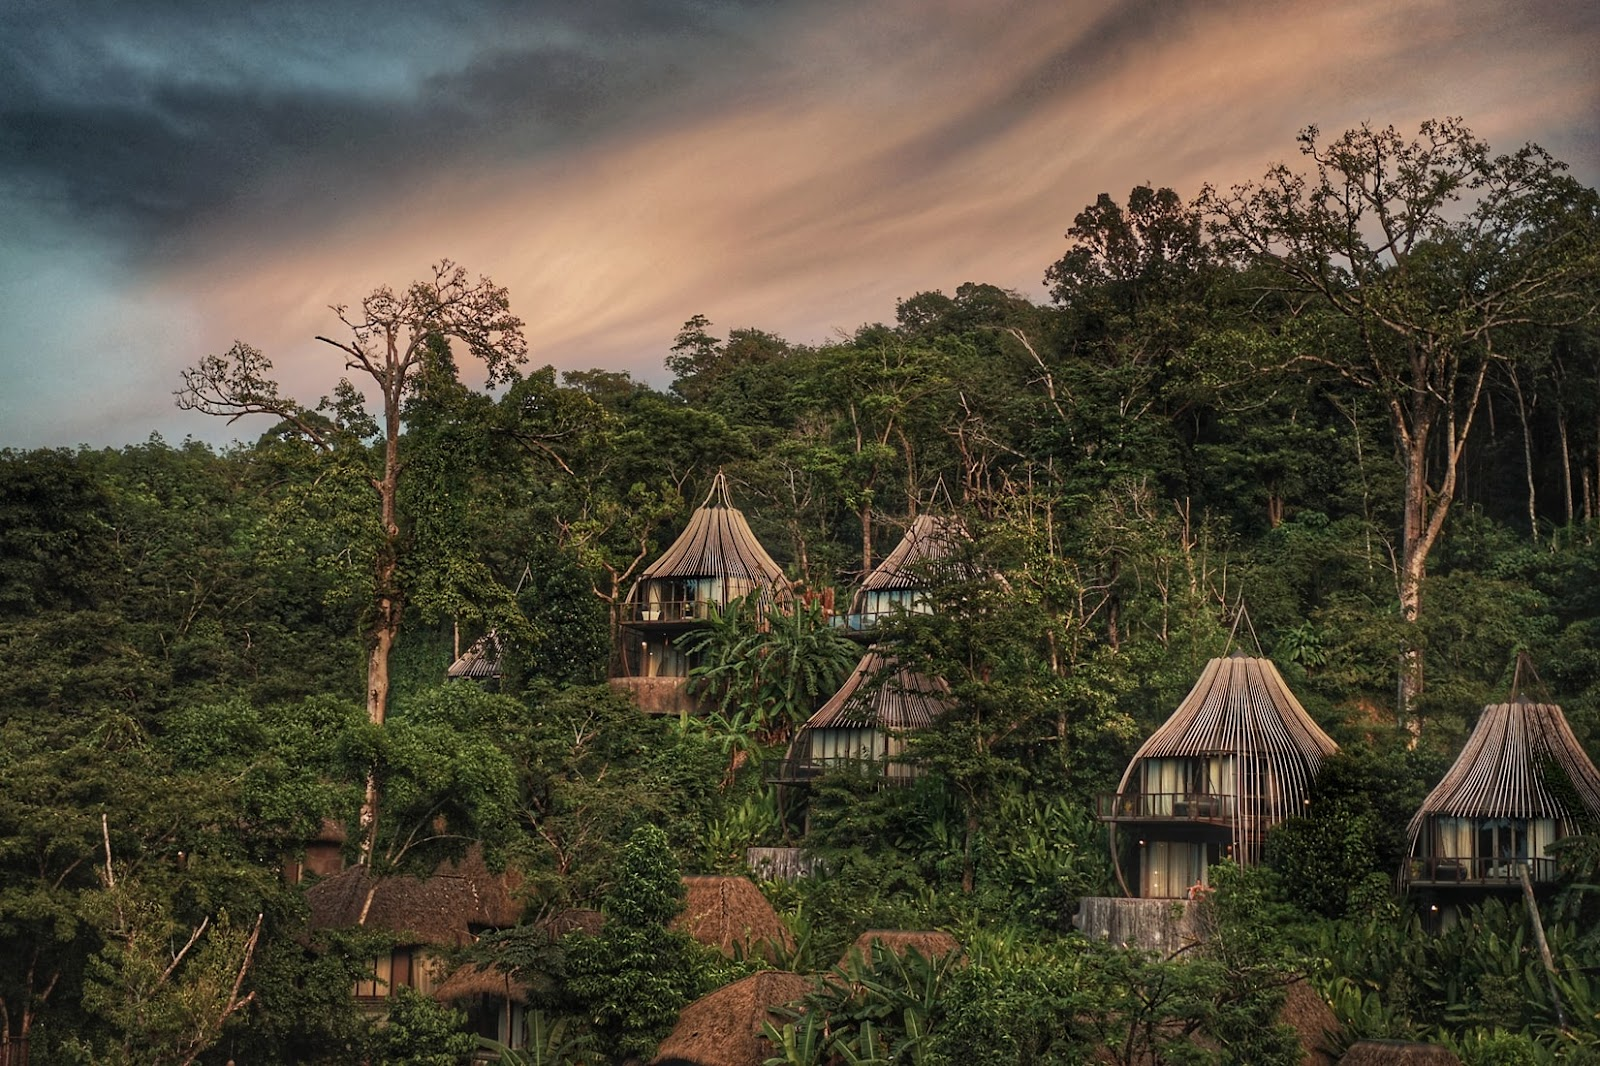 treehouses among the nature